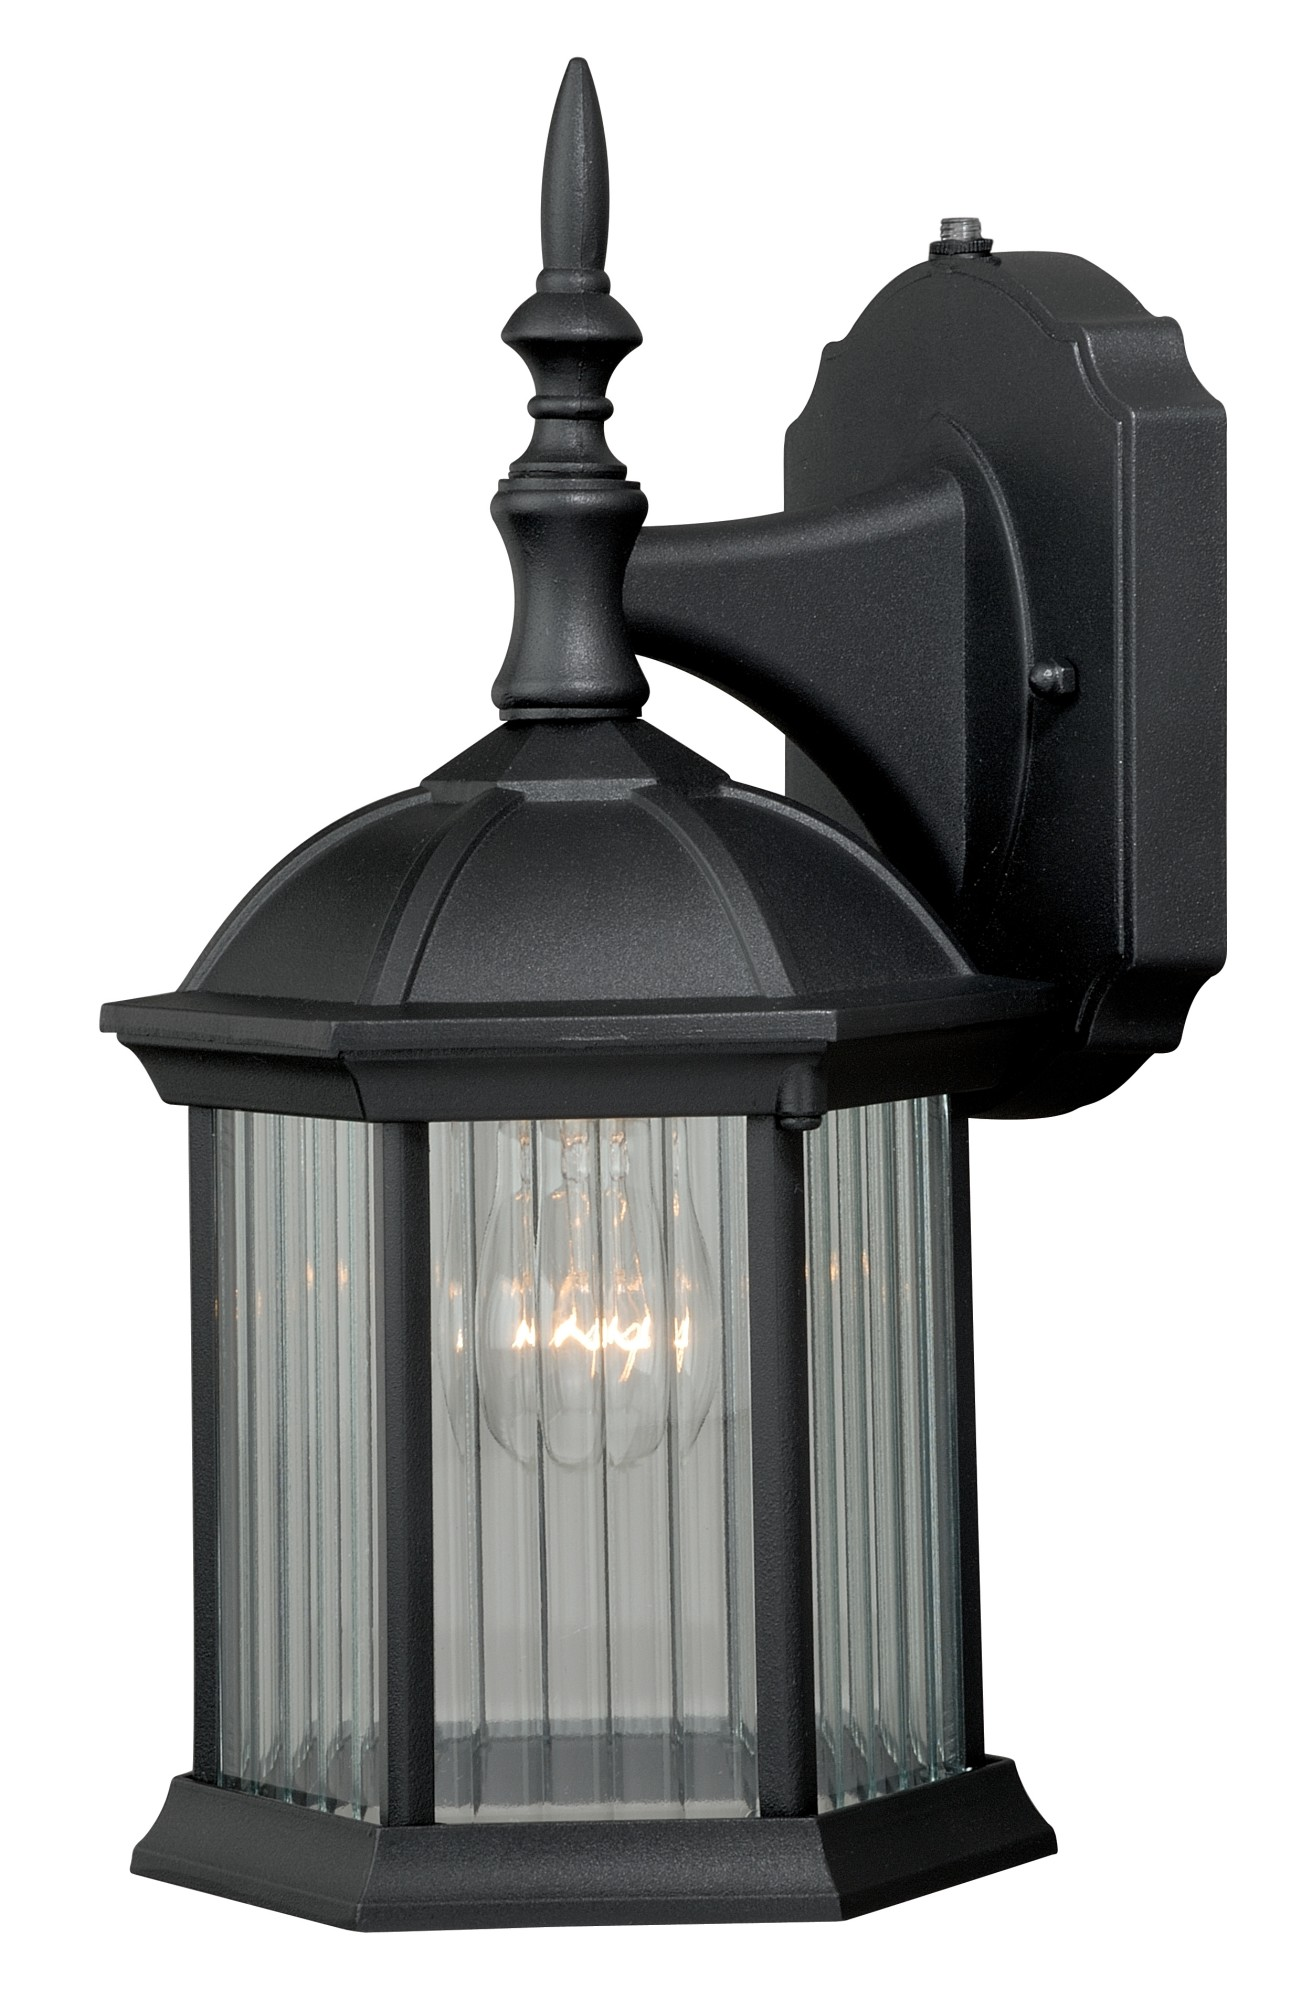 Vaxcel lighting t0130 kingston 1 light 5 wide outdoor wall sconce with photocel